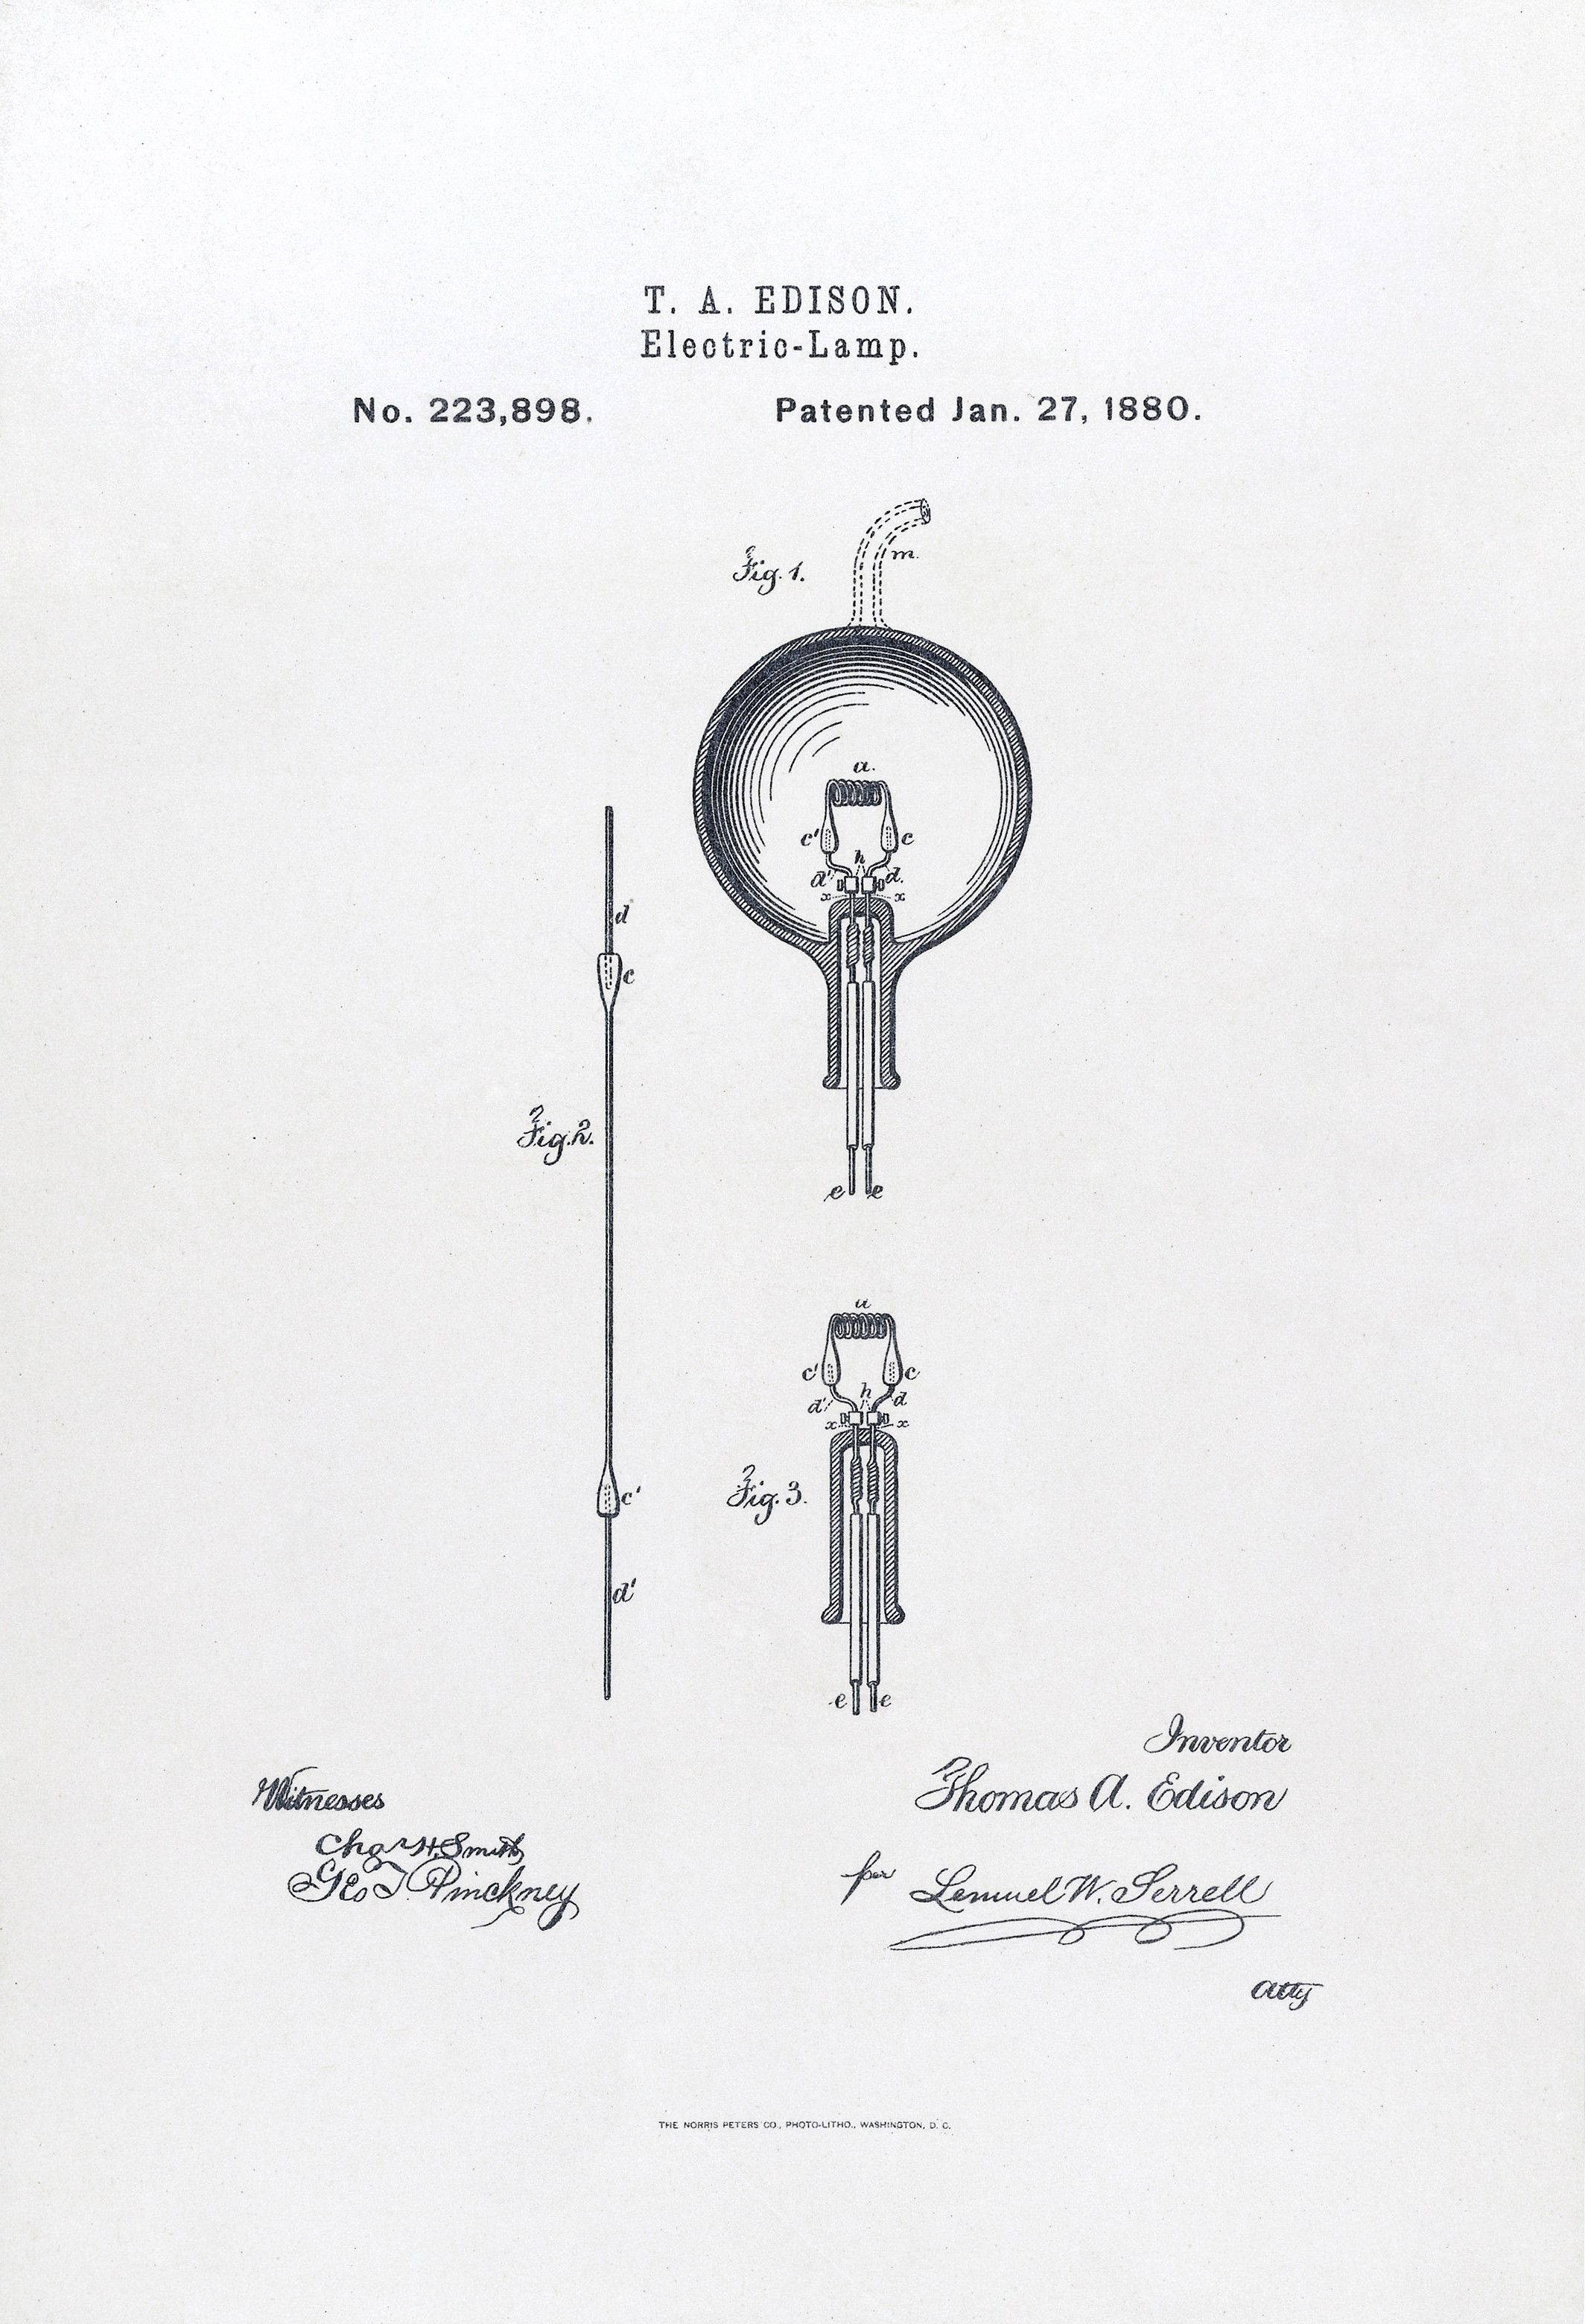 US Patent223898 Electric Lamp Issued January 27 1880